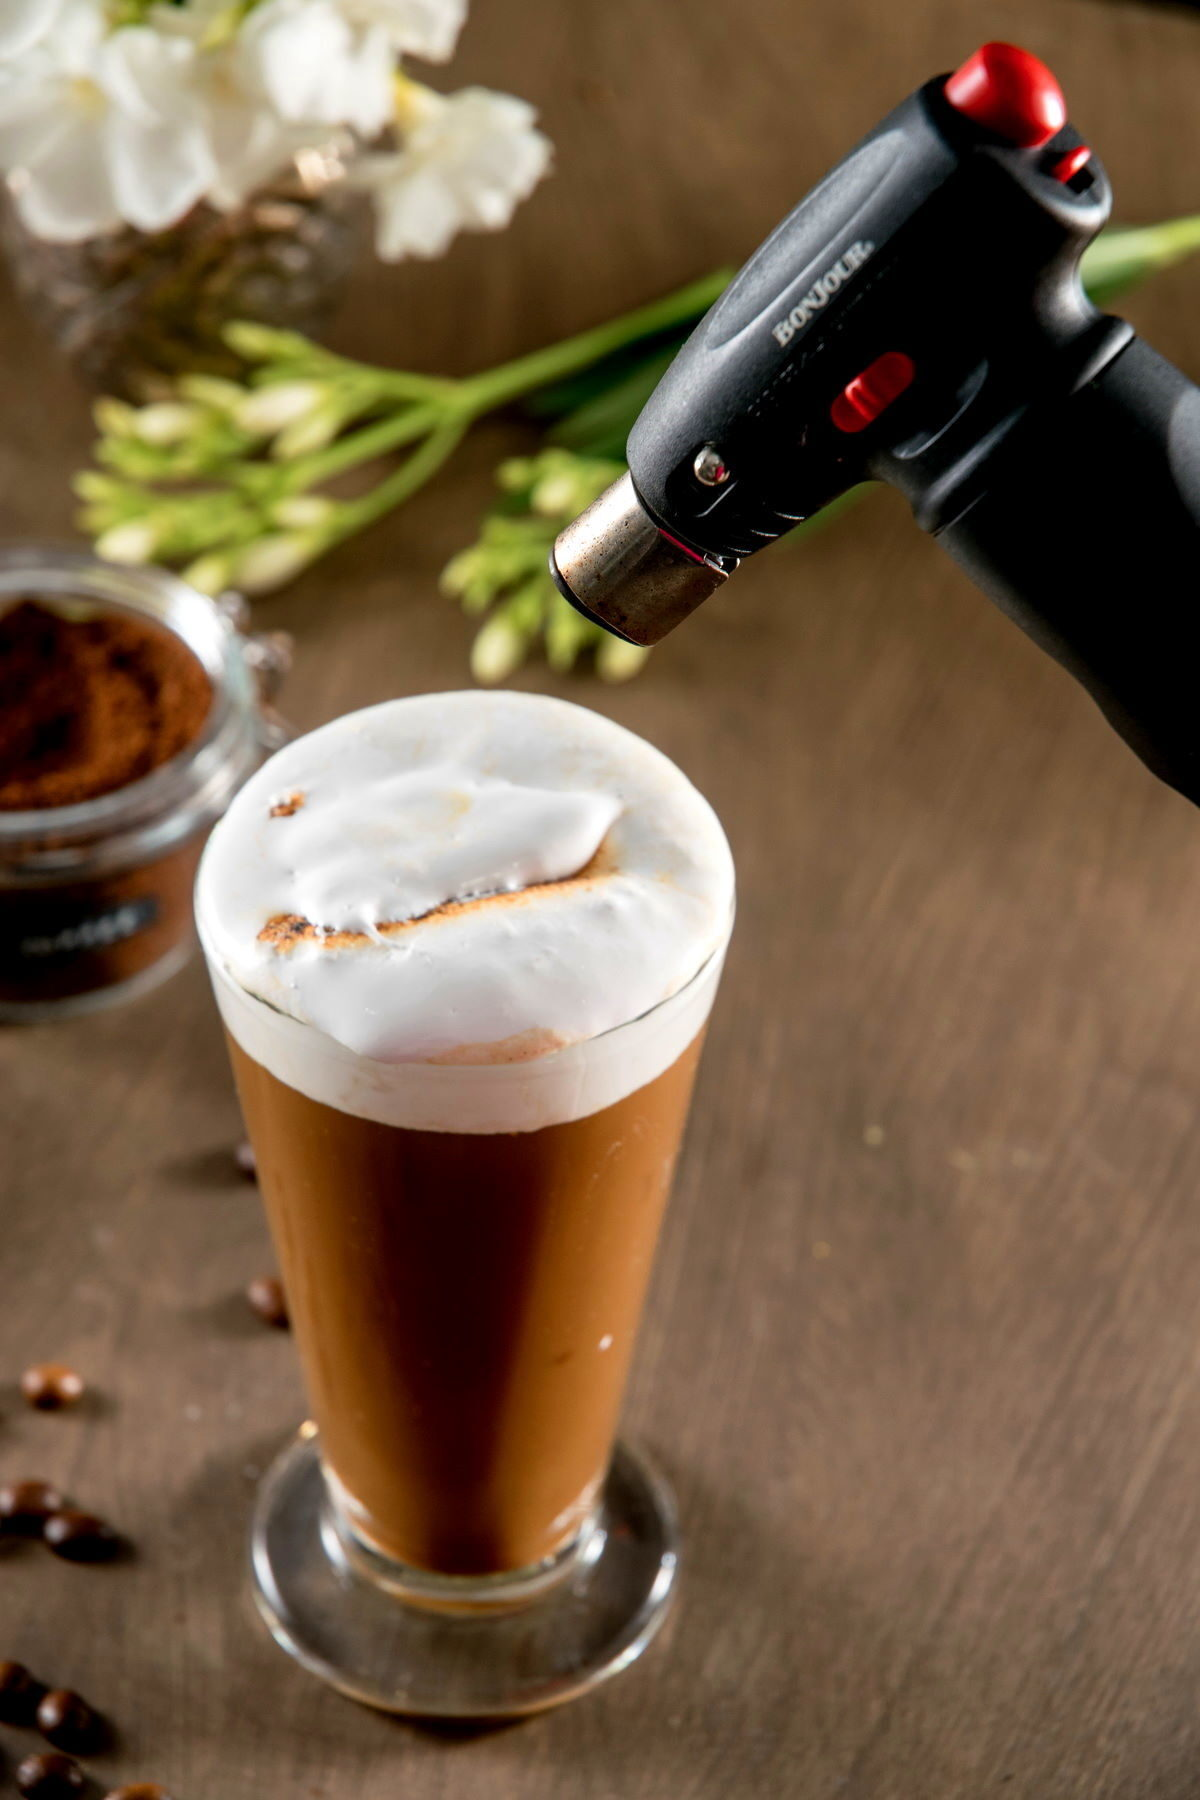 Marshmallow pumpkin latte in a clear glass mug with a kitchen torch.